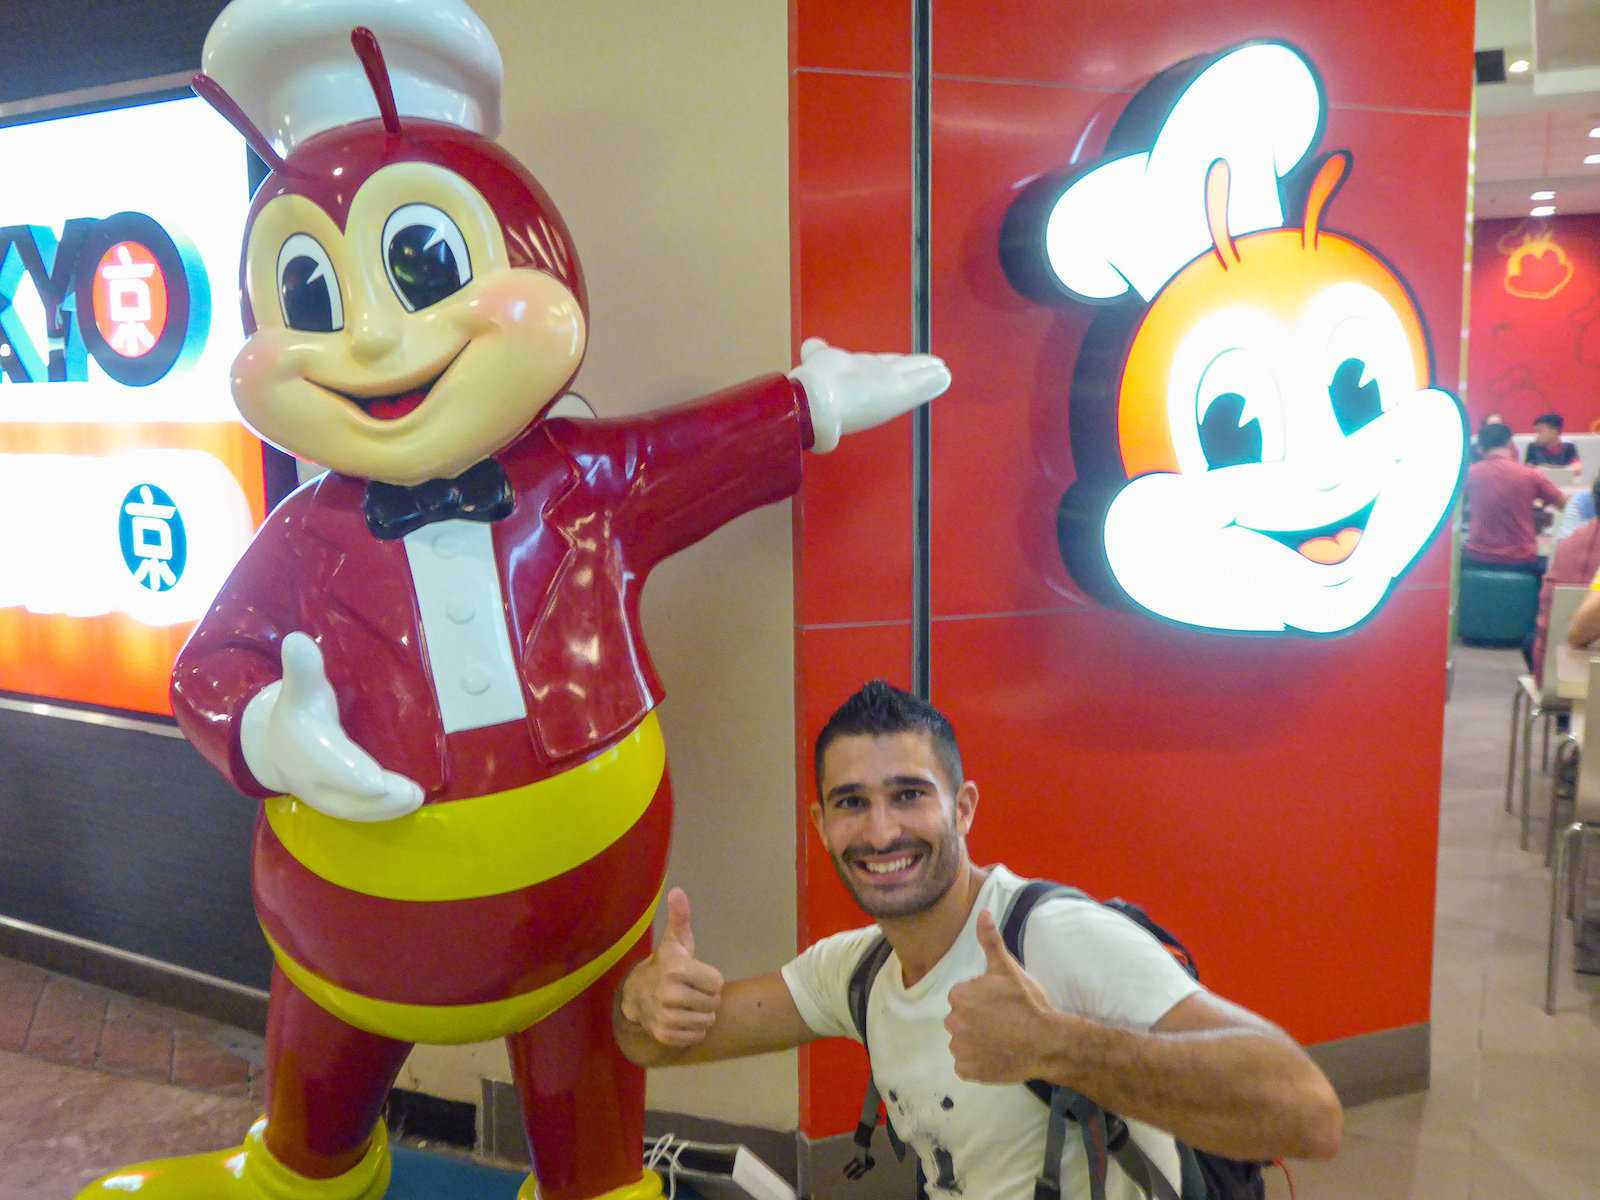 Jollibee is a fast food outlet in the Philippines with the cutest bee mascot!